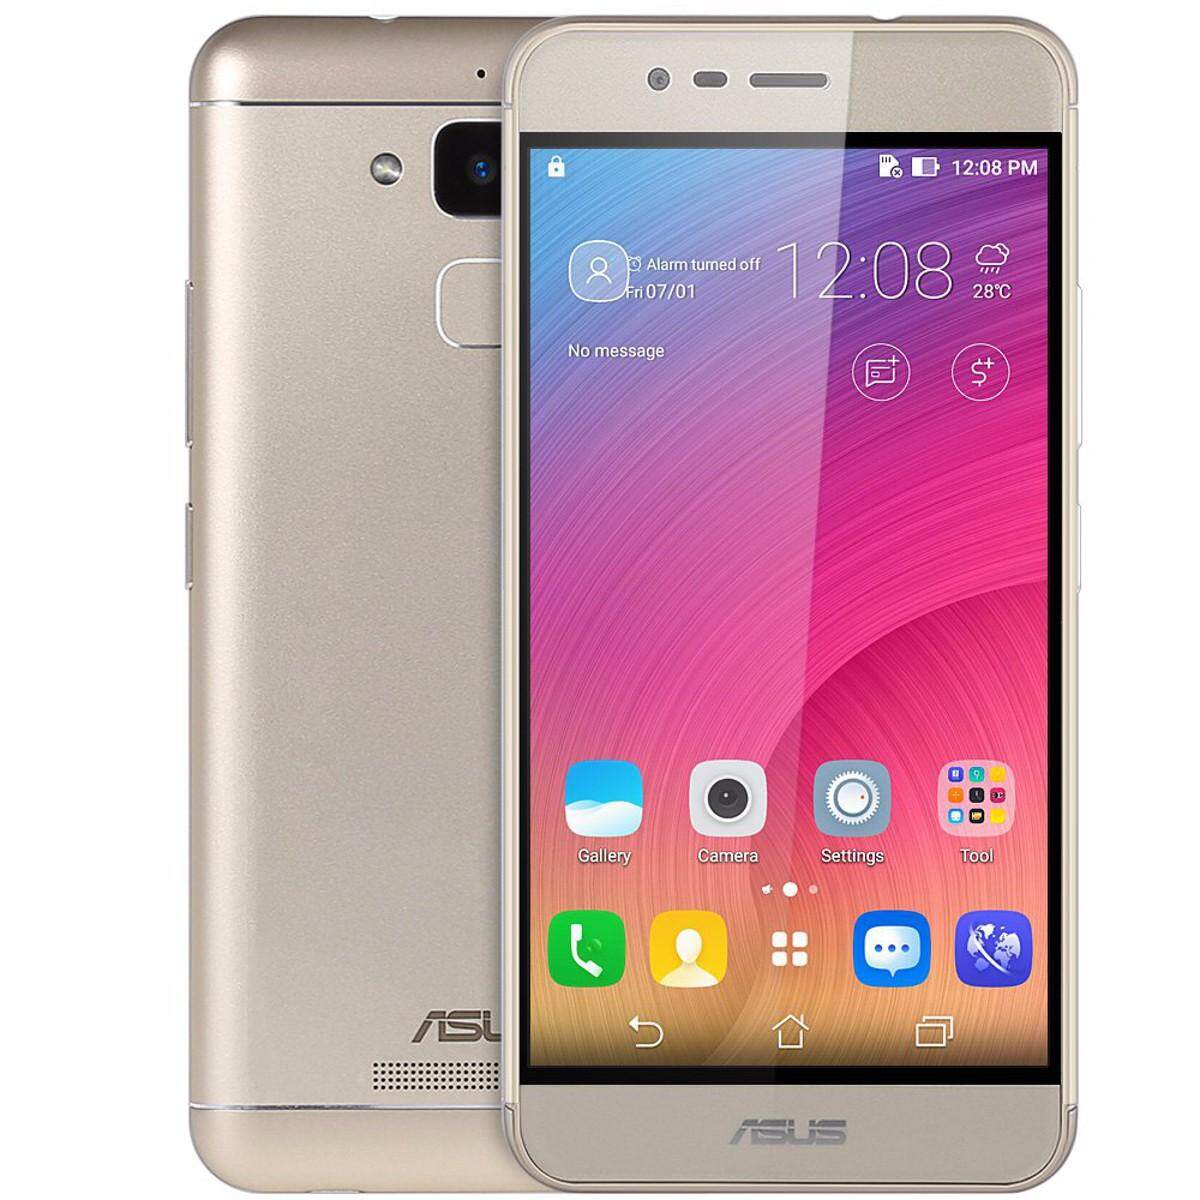 Buy Sell Cheapest Asus Smartphone Best Quality Product Deals Zenfone Max Zc550kl 2gb 32gb White Pegasus 3 X008 52 Inch 3gb Ram Rom Mt6737 Quad Core 4g